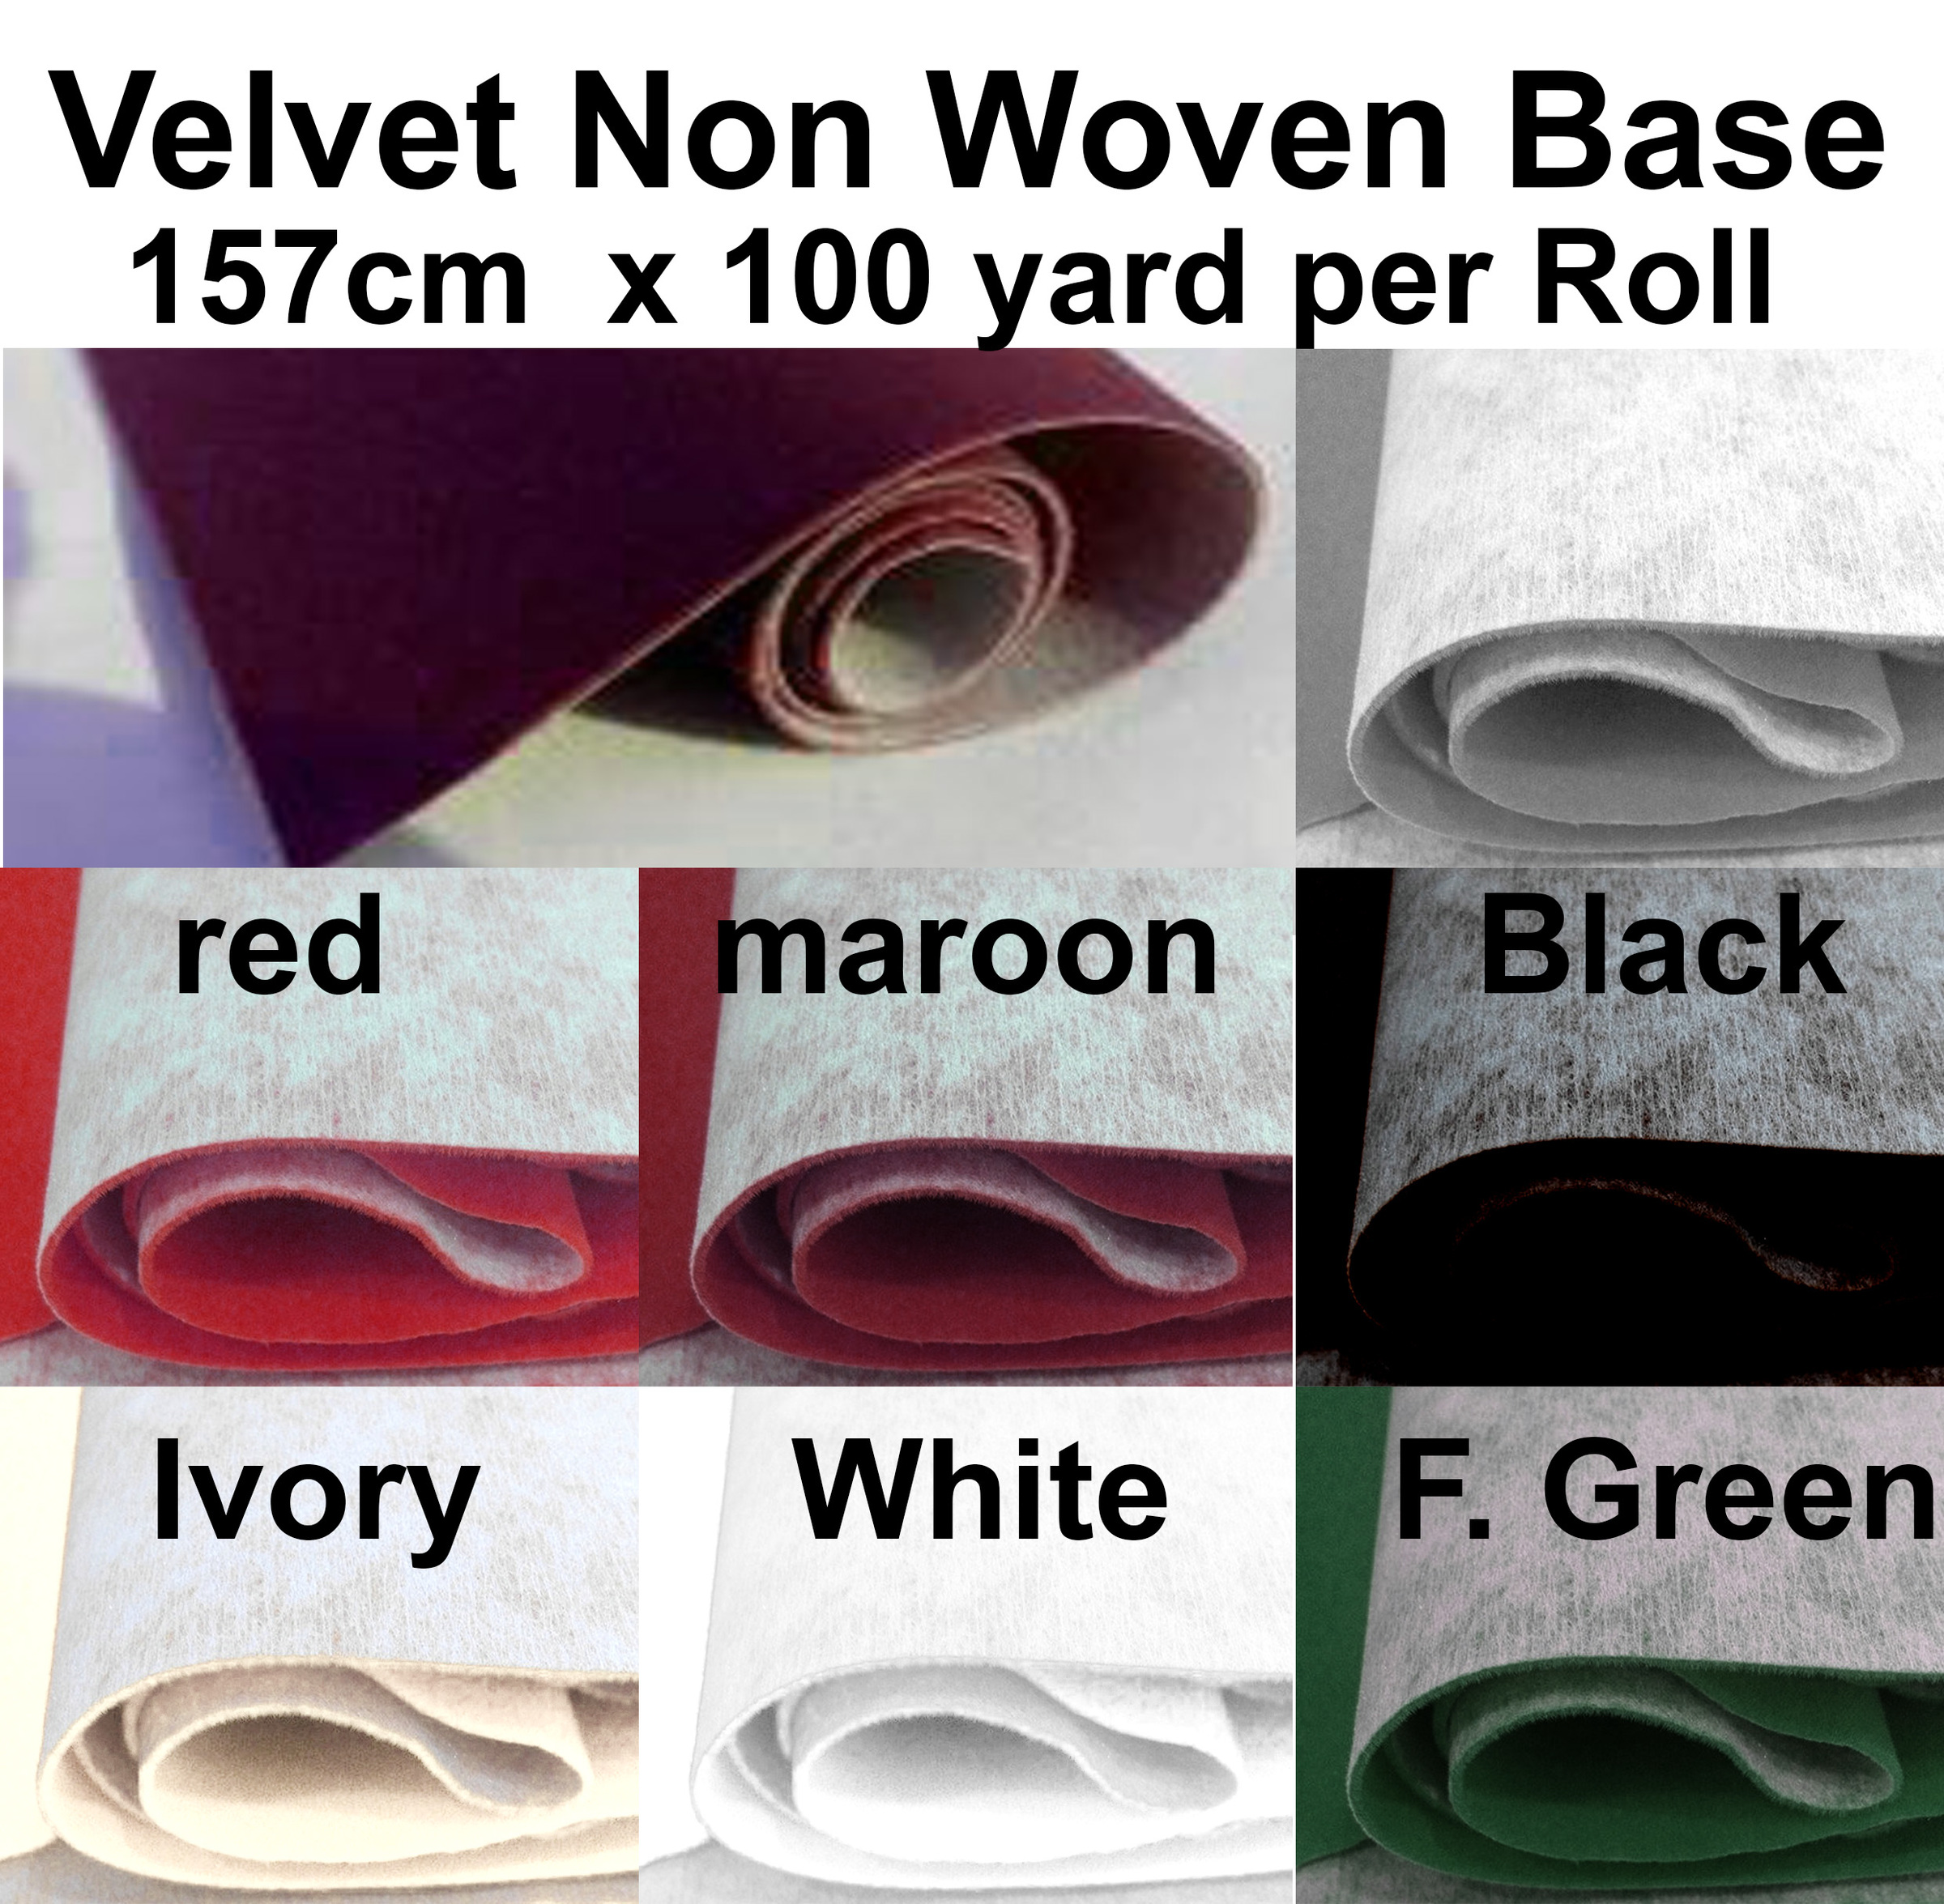 velvet non woven base by roll and yaer malaysia velvet .jpg